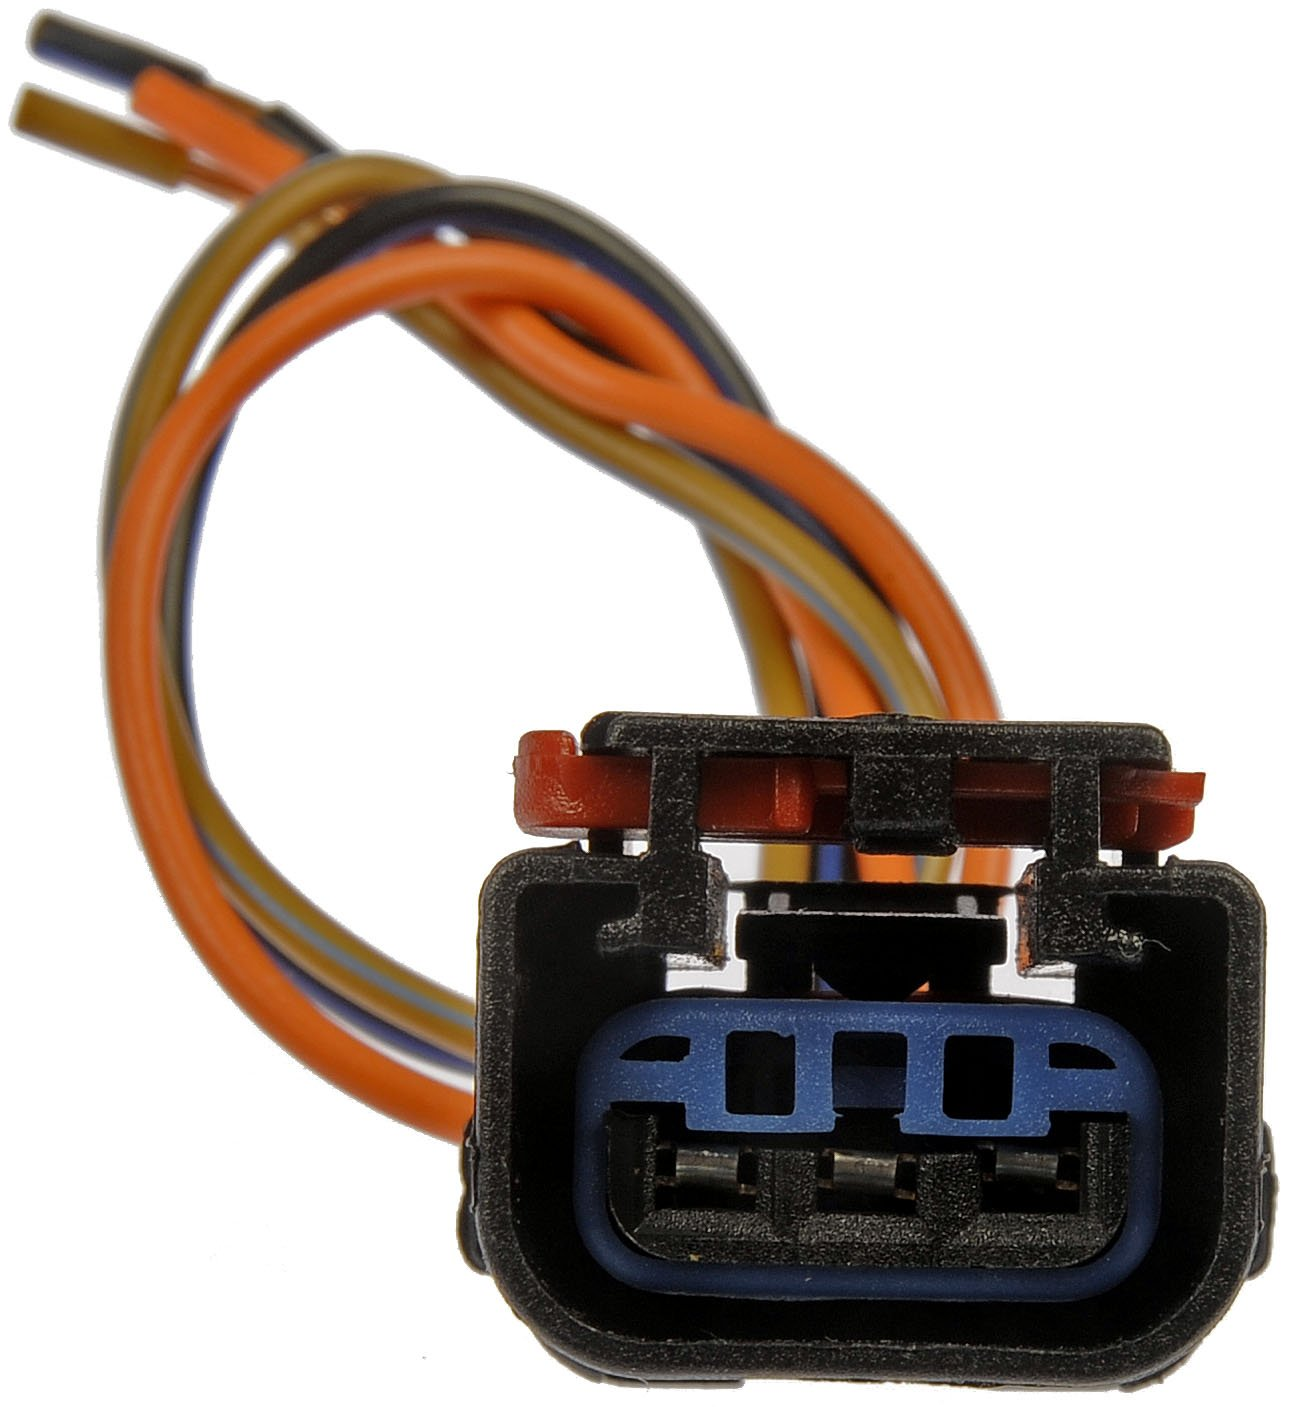 71Yk0ug33cL._SL1407_ amazon com dorman 645 187 3 wire electrical socket harness 4 wire harness connector at edmiracle.co